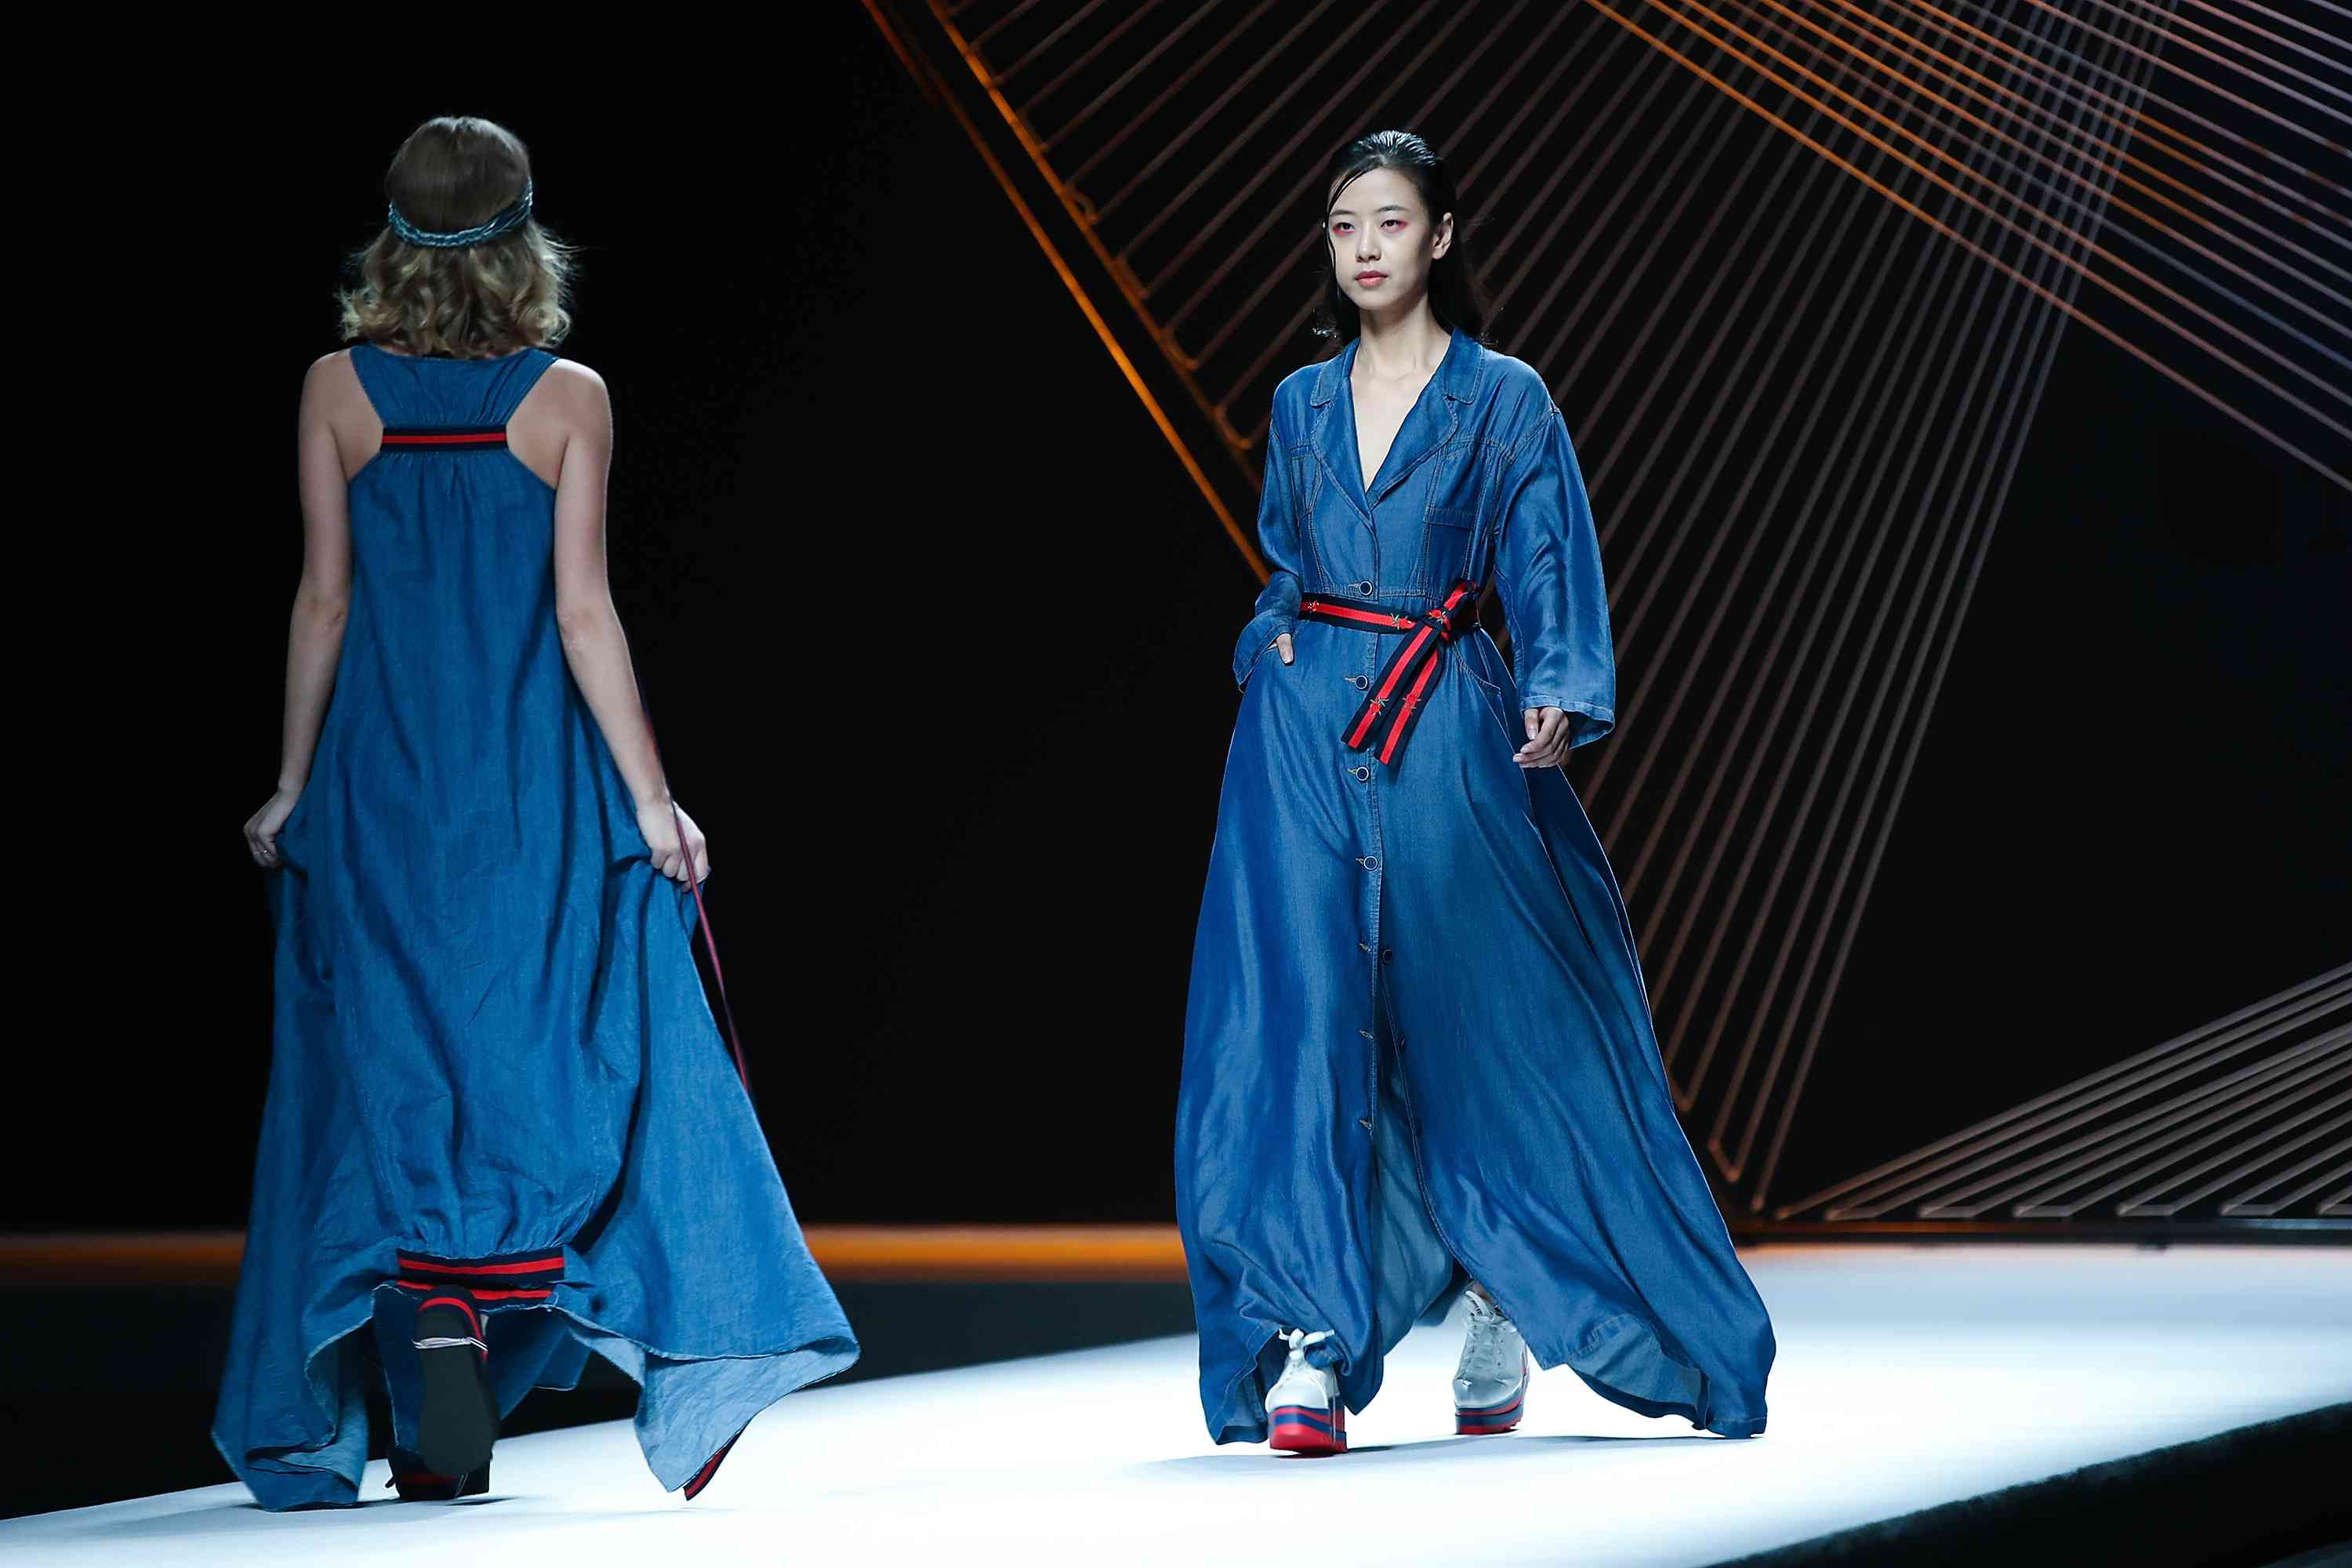 Mercedes-Benz China Fashion Week S/S 2018 Collection - Day 9